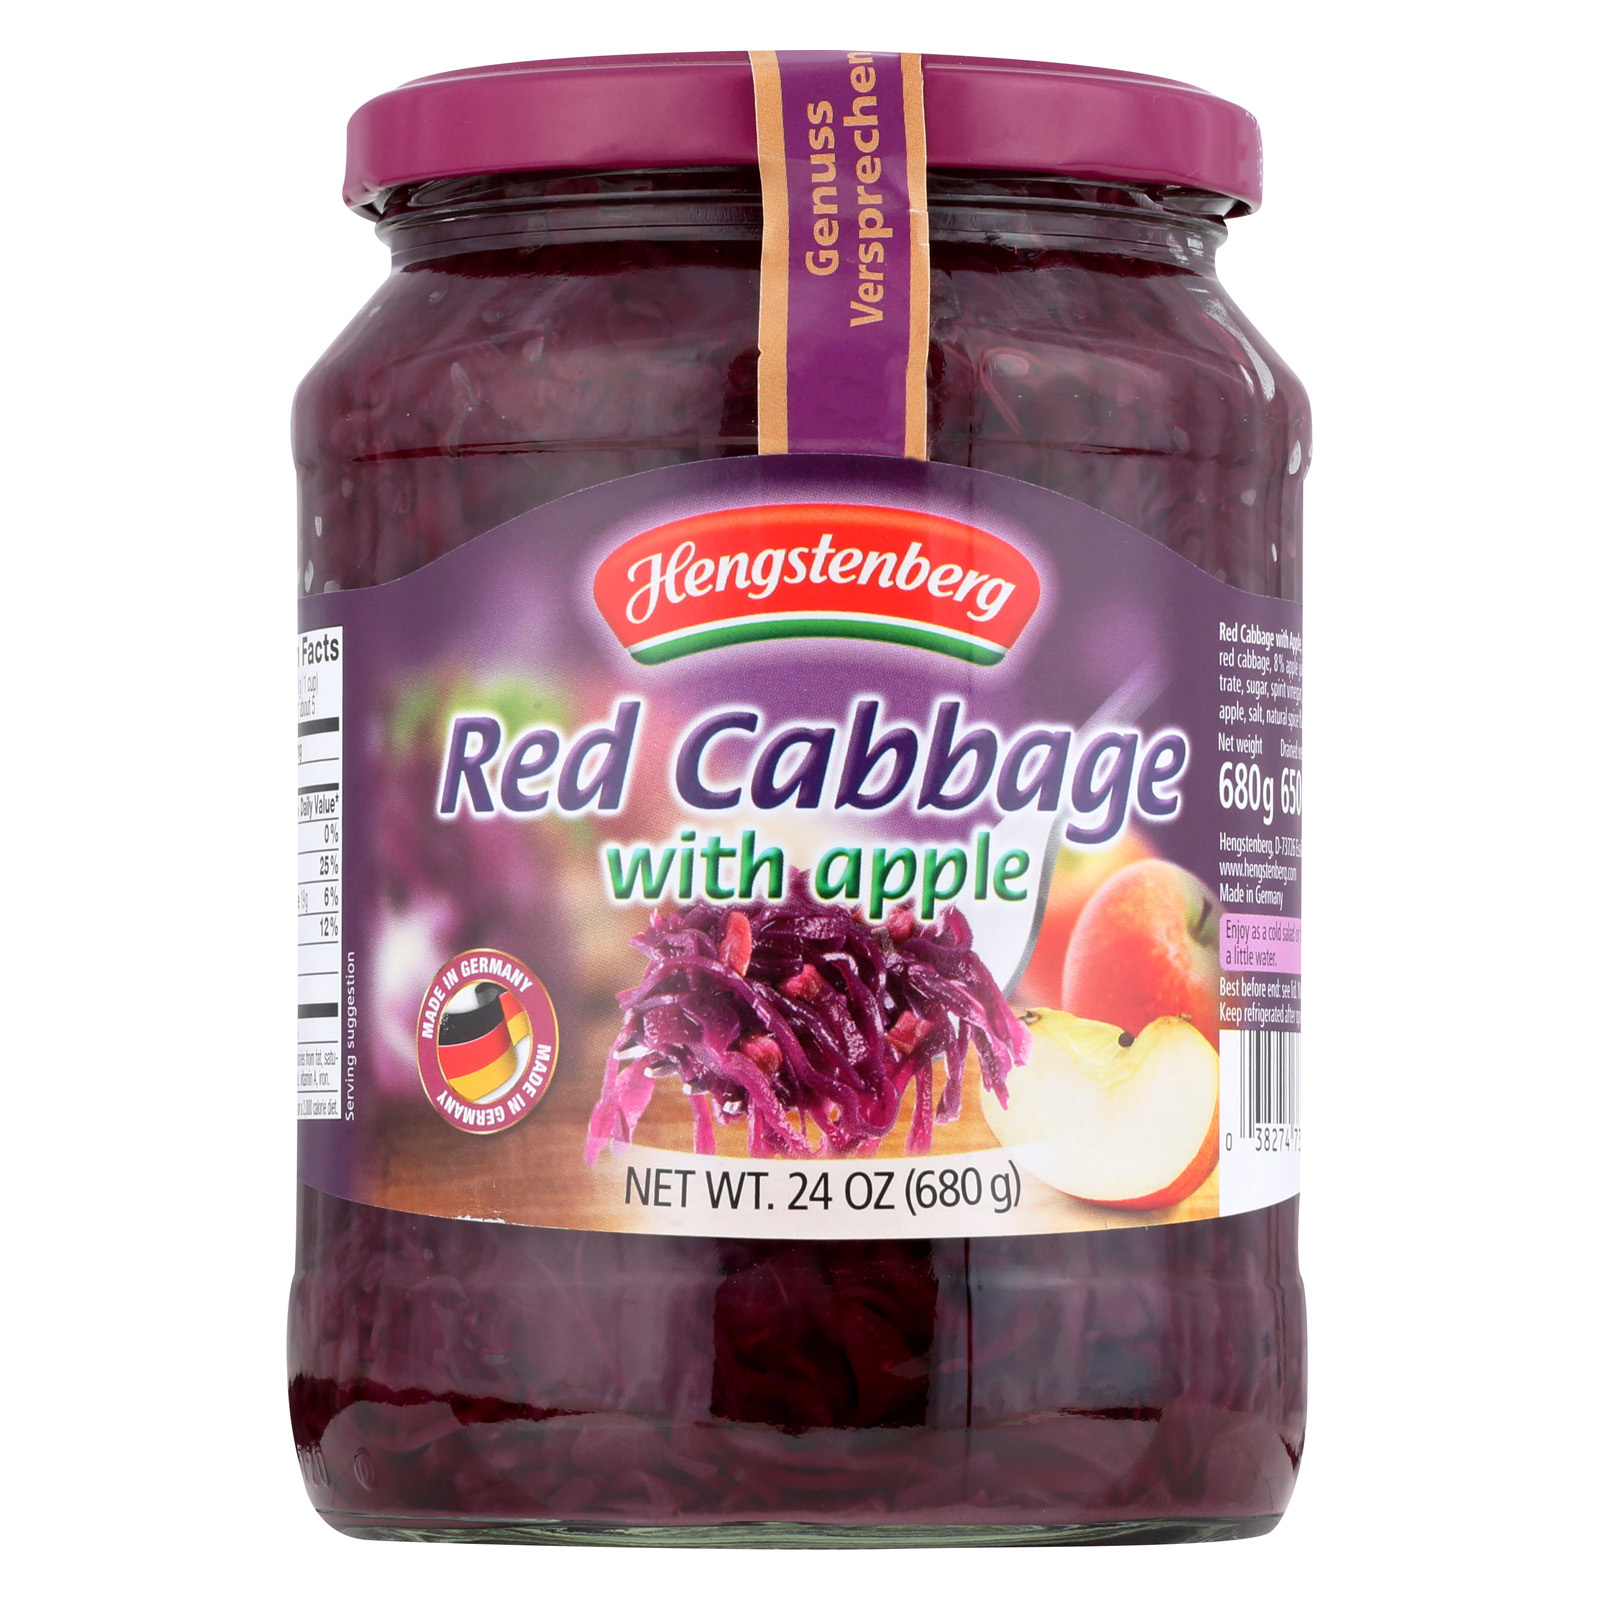 Hengstenberg Red Cabbage with Apple - 24.3 oz.